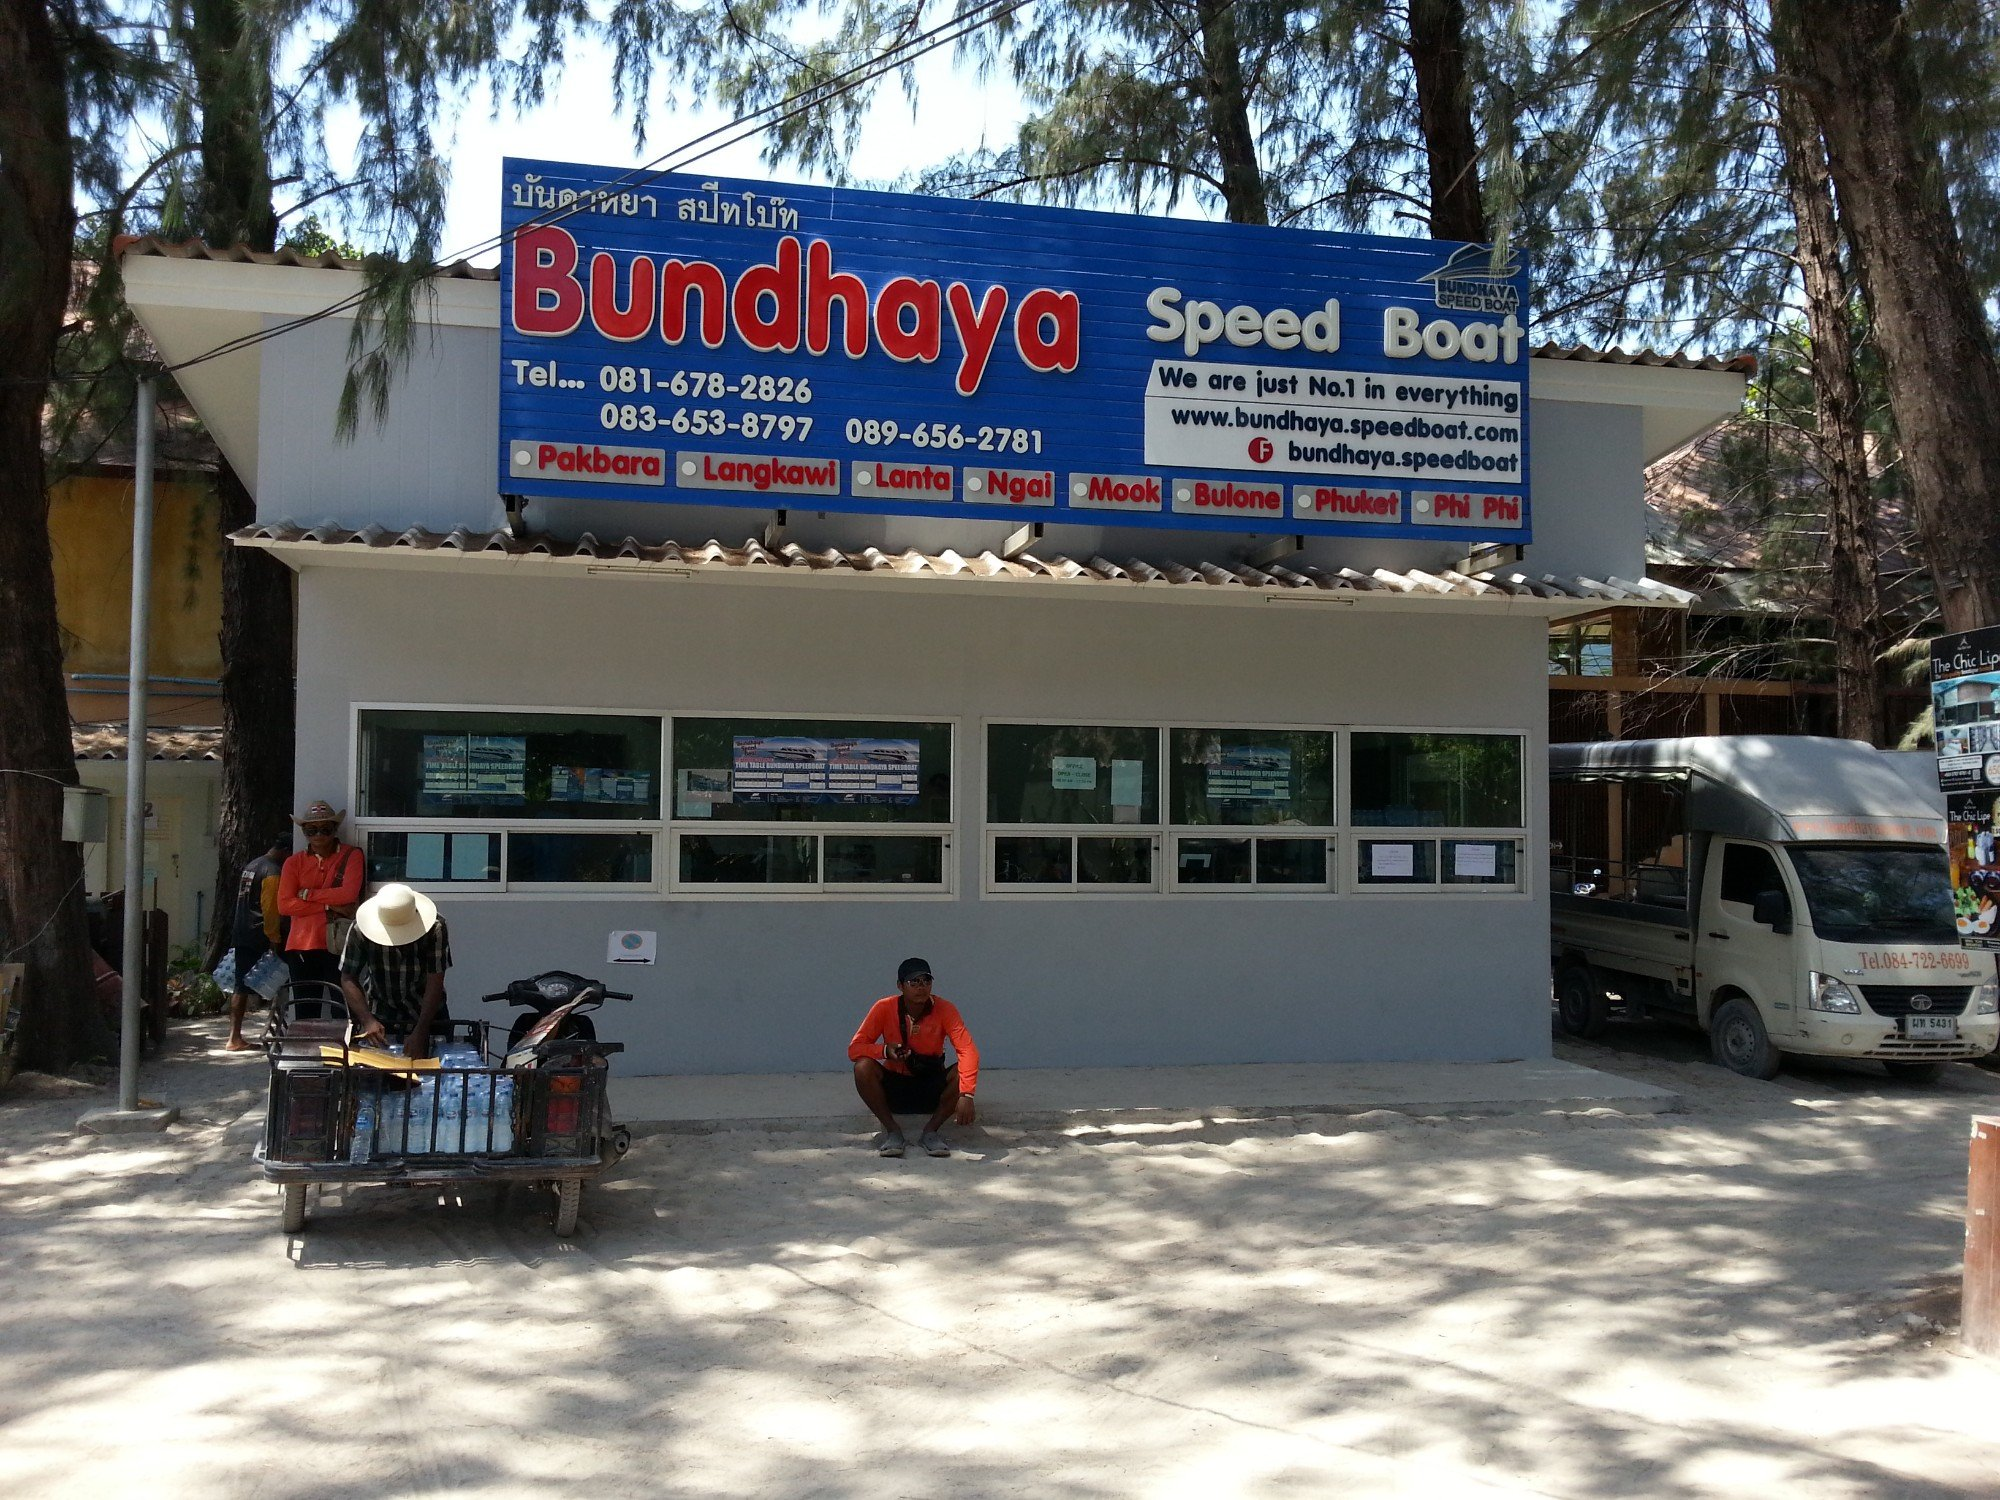 Bundhaya Speed Boat office in Koh Lipe